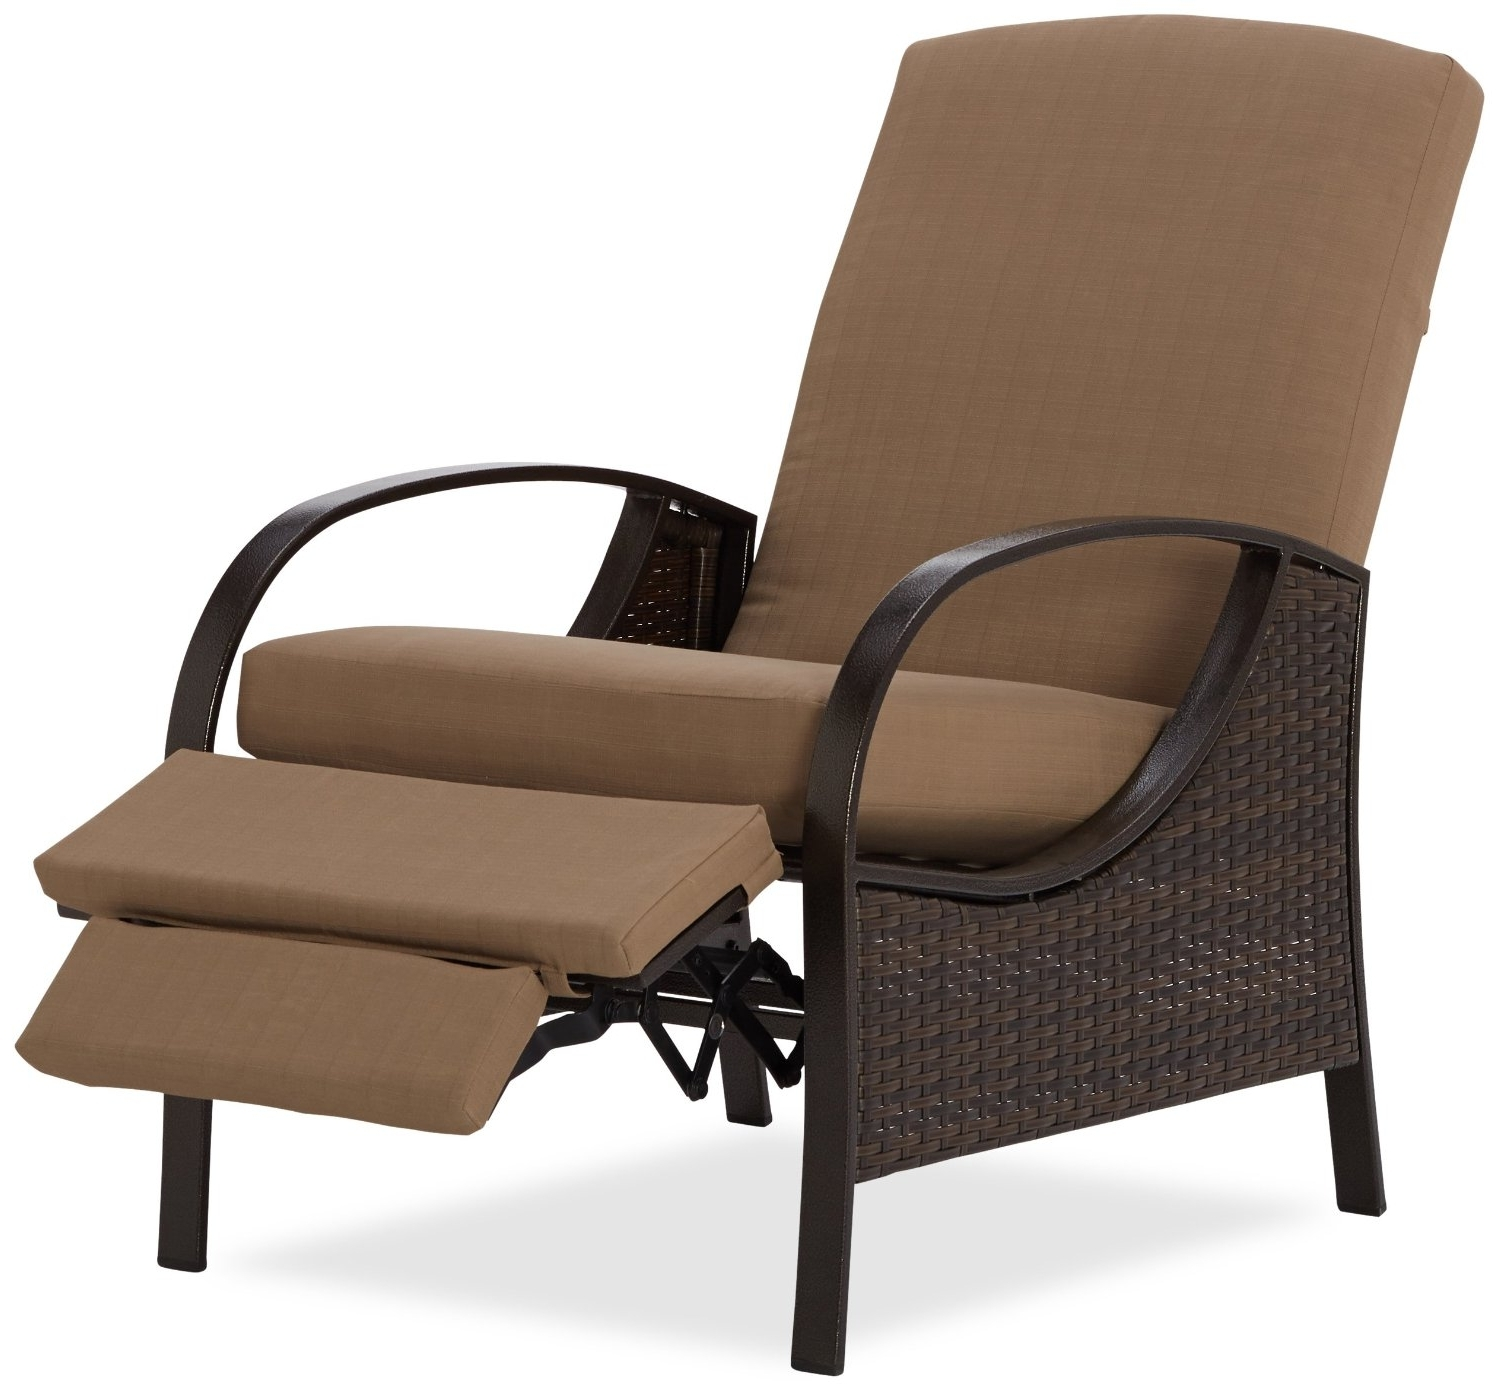 Chaise Recliner Chairs With Current Convertible Chair : Tall Patio Chairs Reclining Garden Furniture (View 3 of 15)